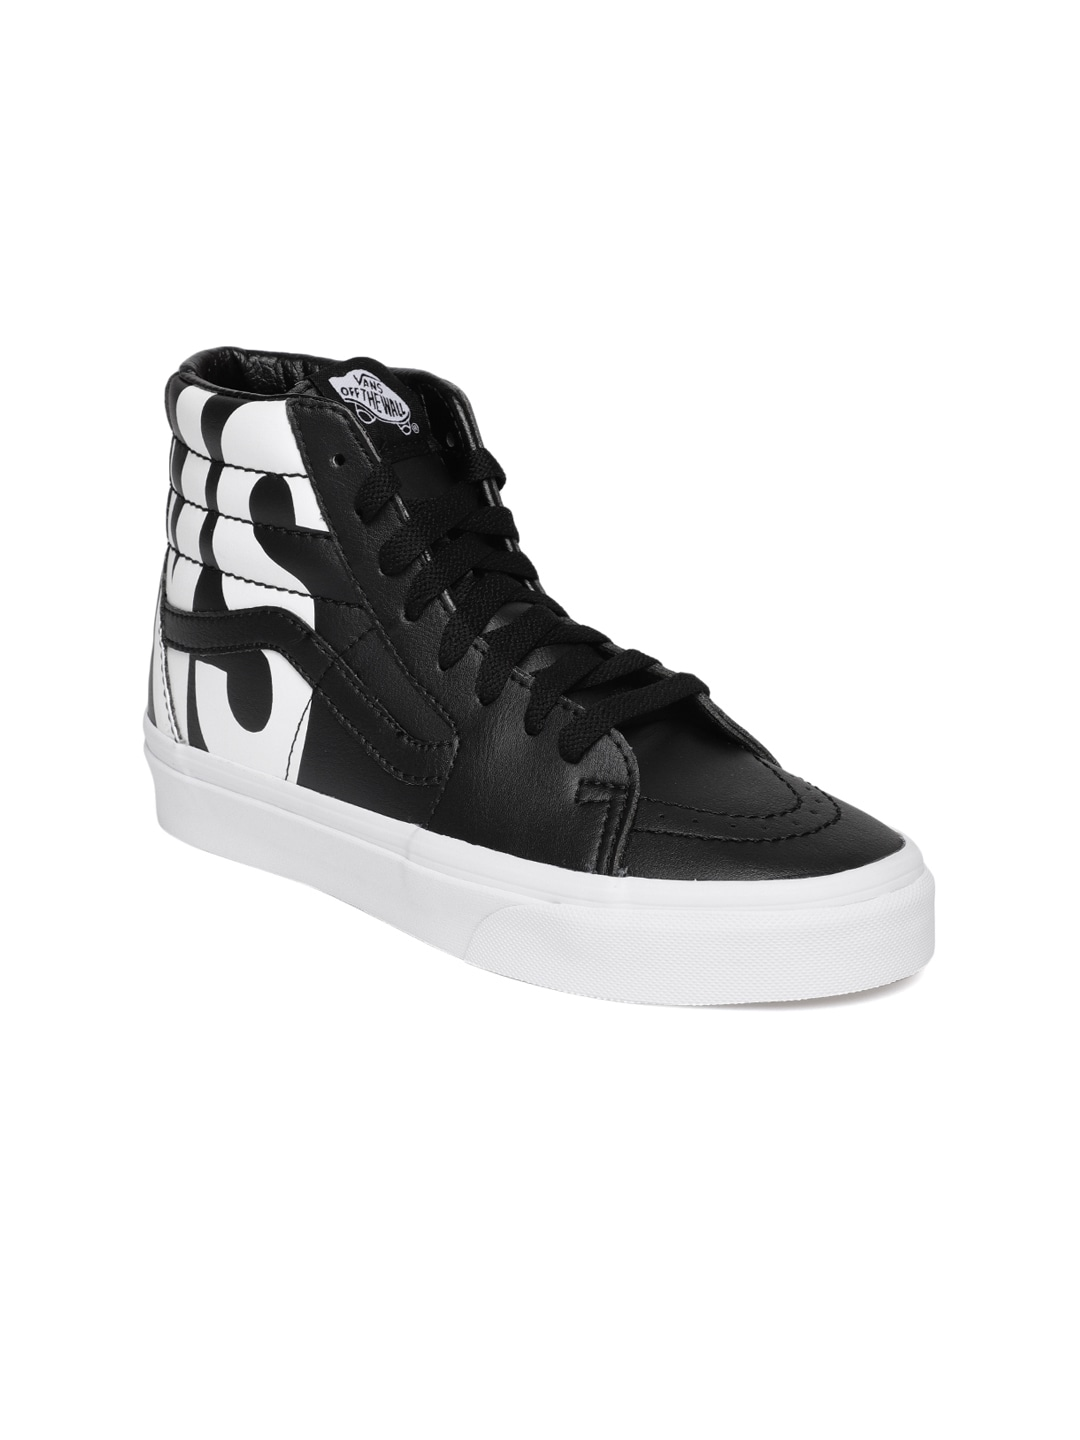 6adcfa99a8ac Vans High Top Shoes - Buy Vans High Top Shoes online in India